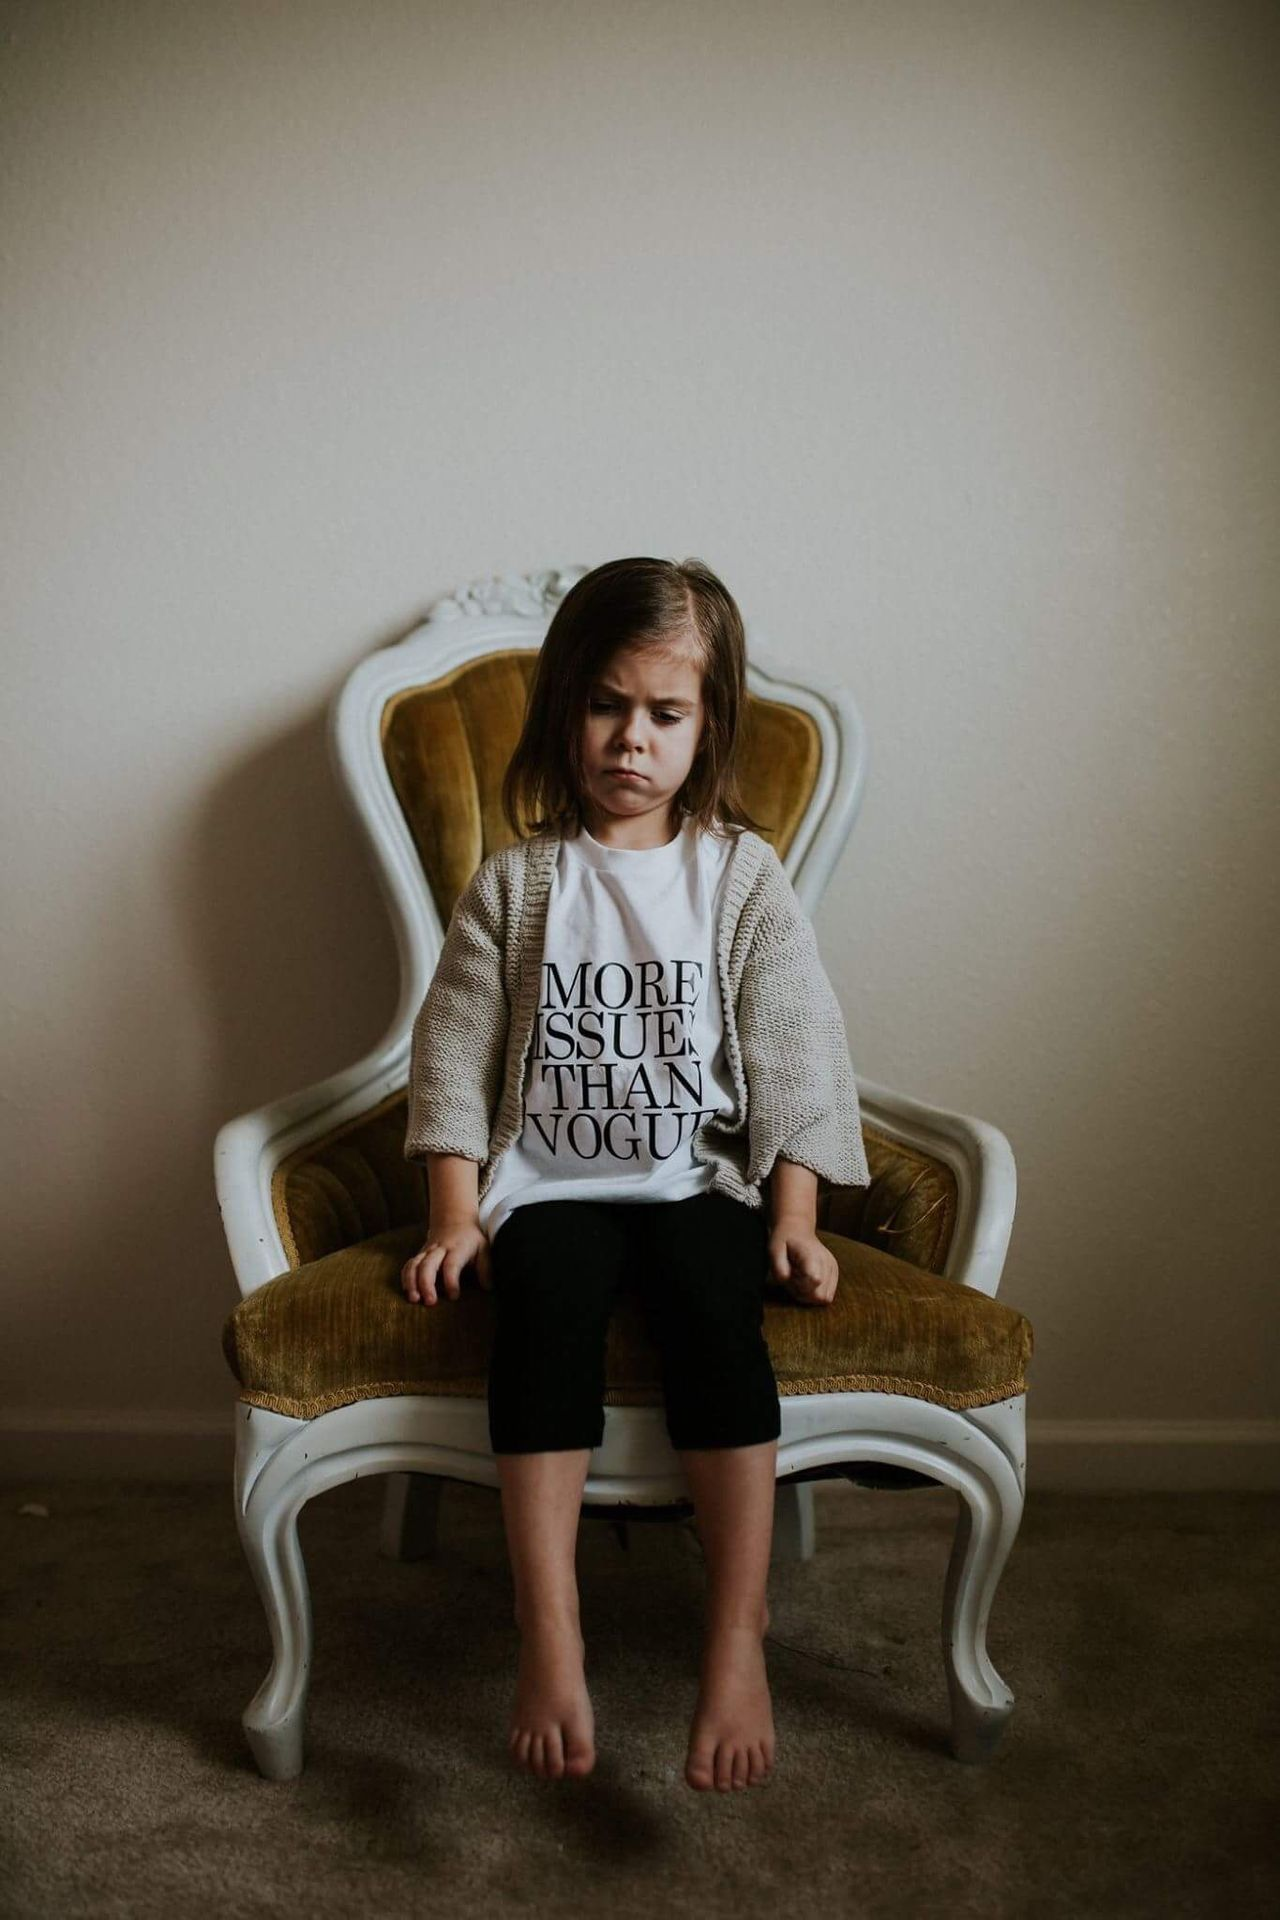 More issues than vogue. Living Room Child Looking At Camera Casual Clothing Elementary Age Family Childhood Lifestyles Full Length